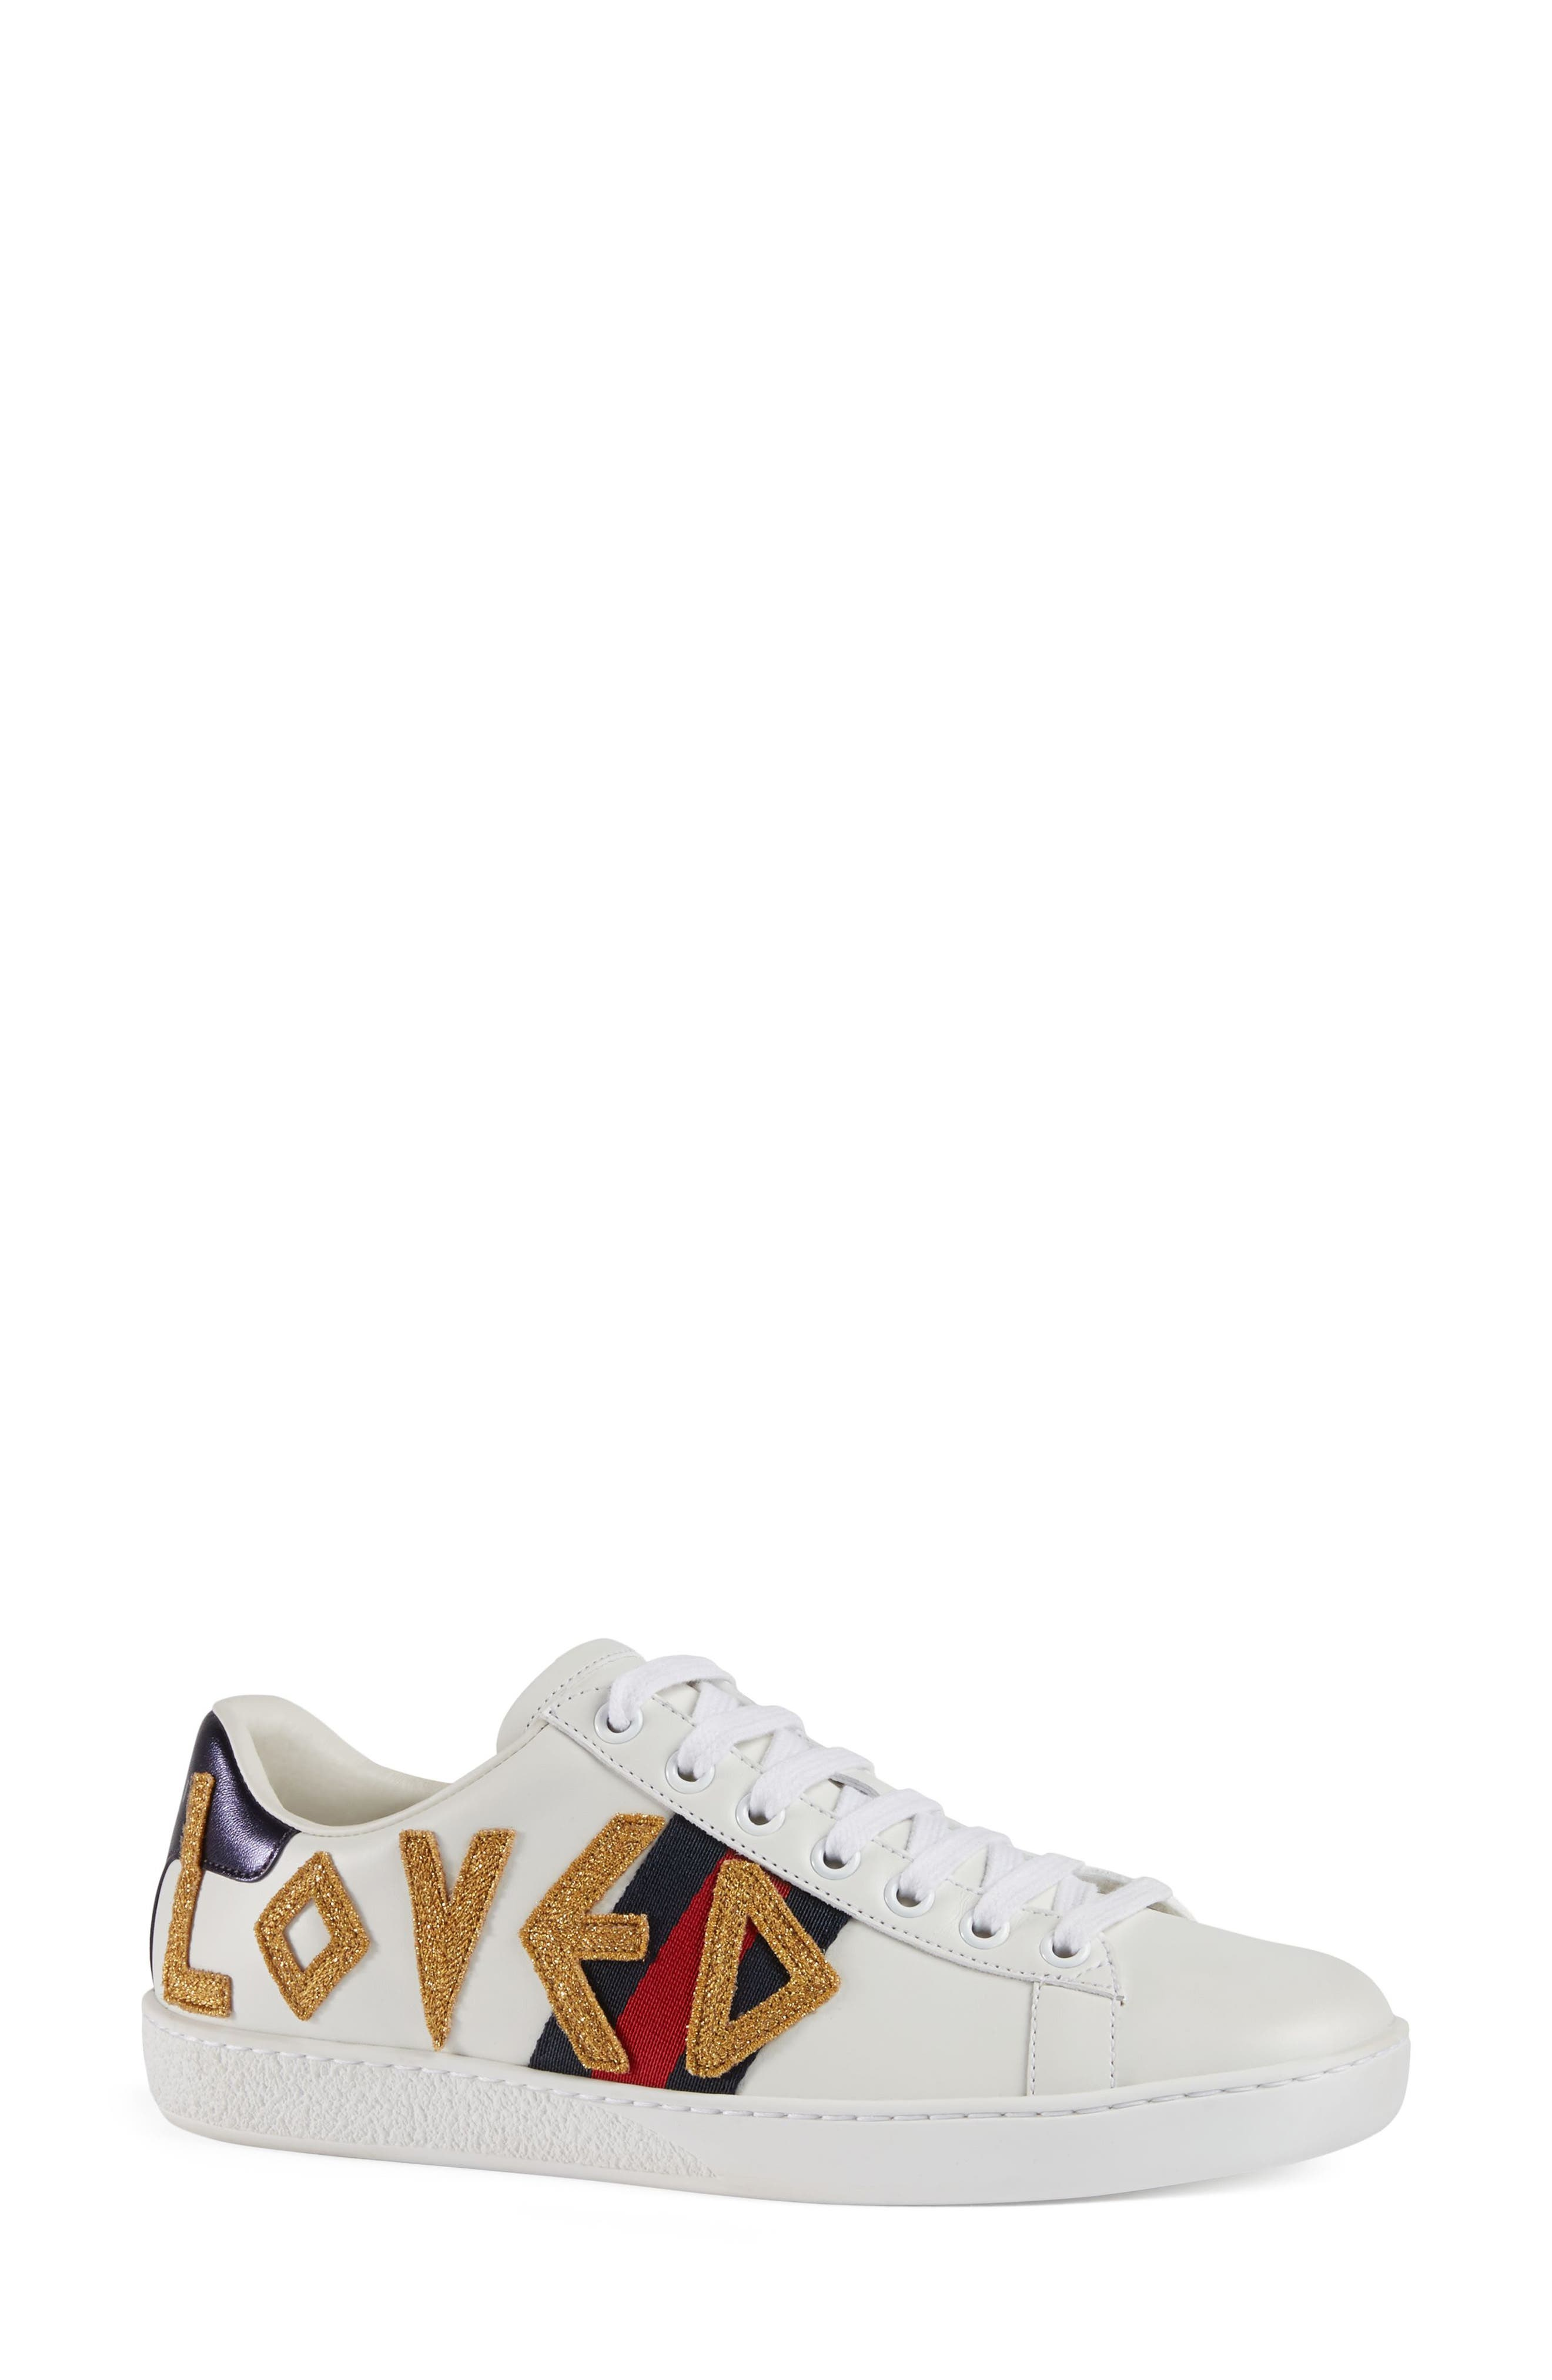 Alternate Image 1 Selected - Gucci New Ace Loved Sneakers (Women)